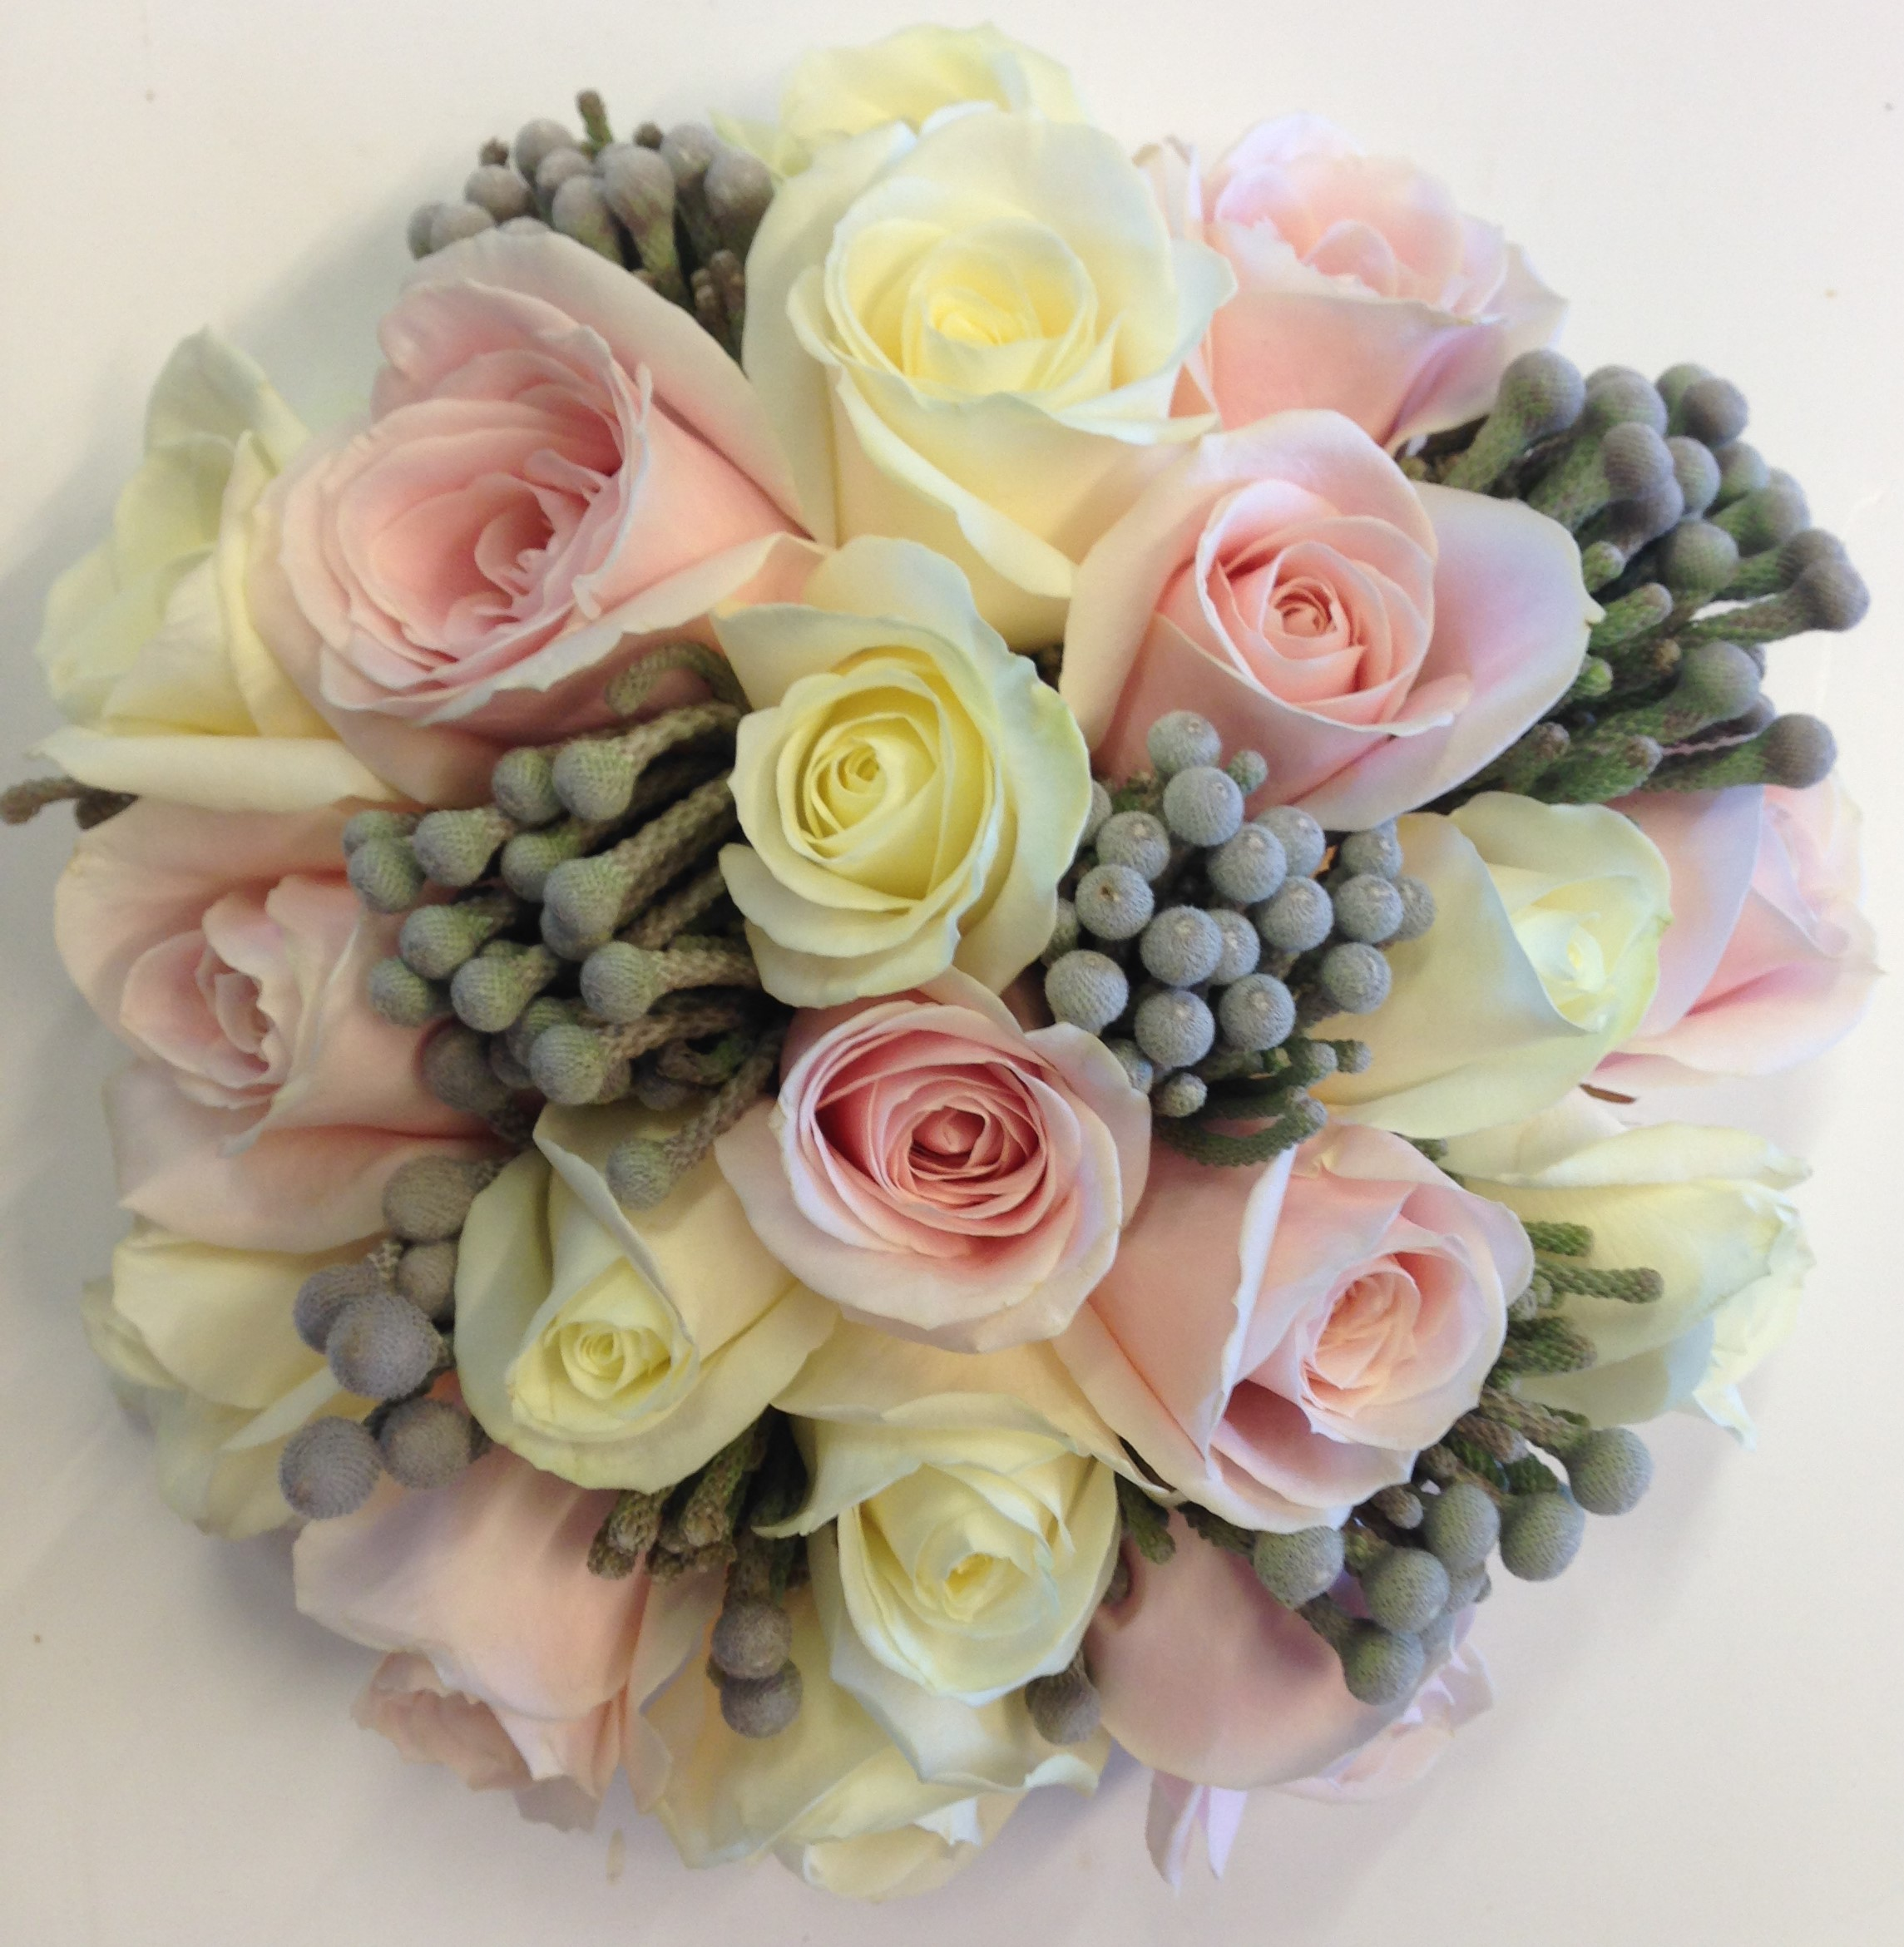 pastel pink roses with white roses and grey berries  wedding flowers